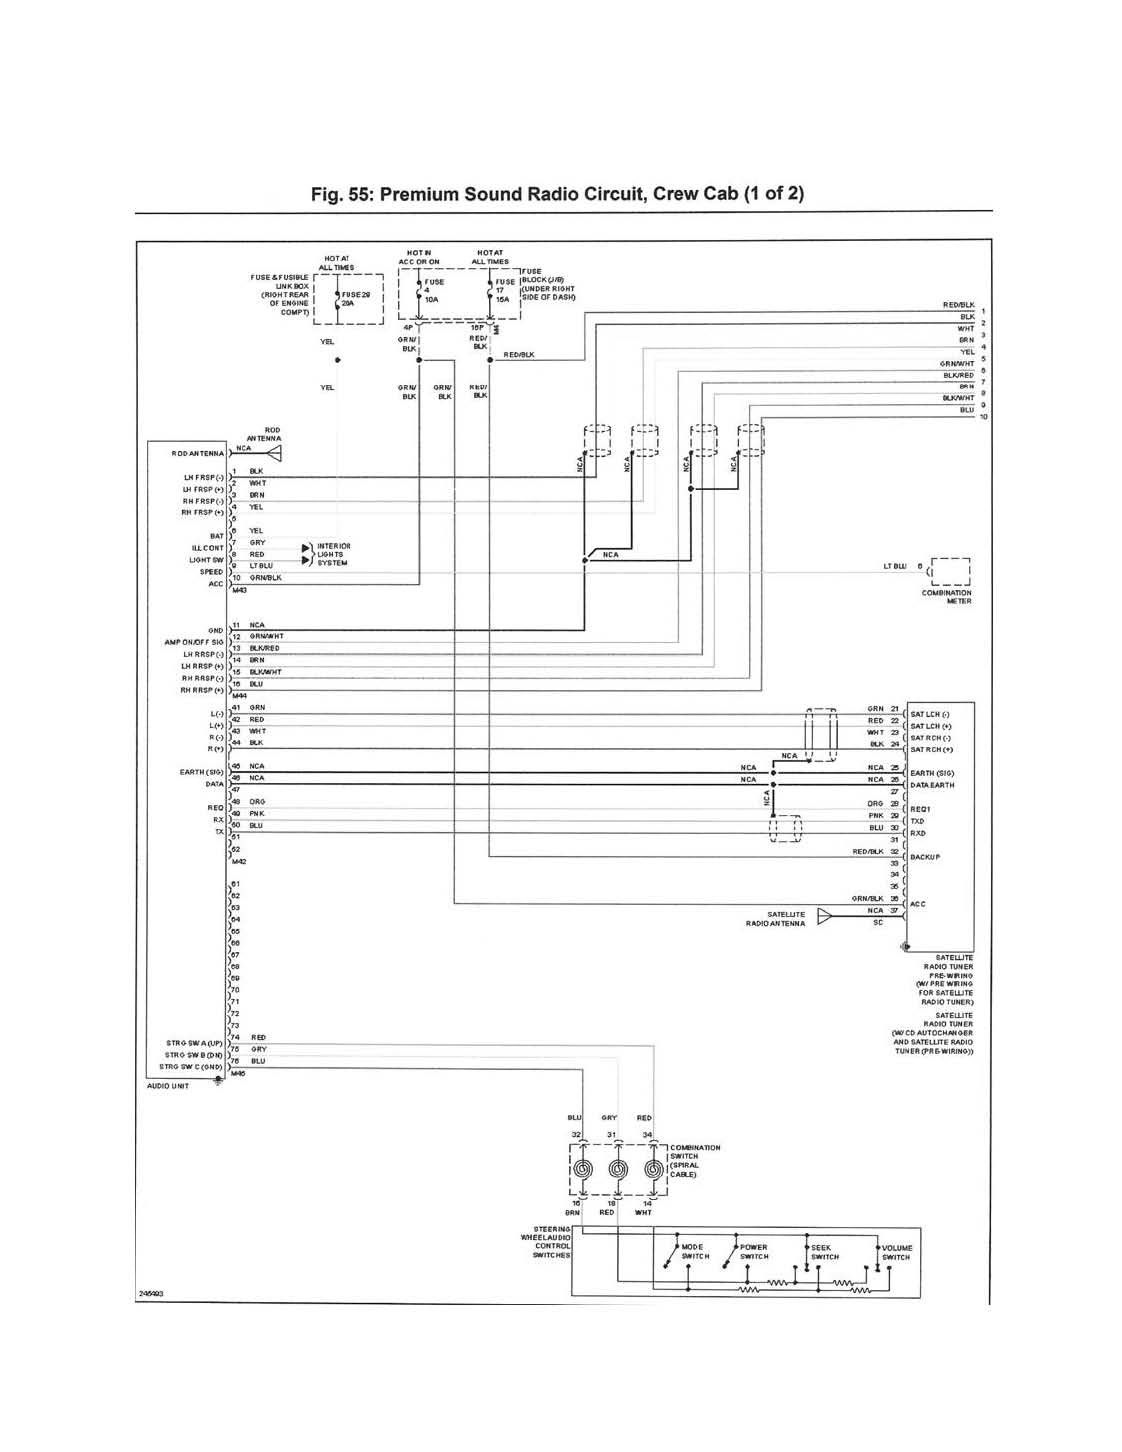 Nissan Frontier Wiring Diagram : Nissan frontier radio wiring diagram autos post